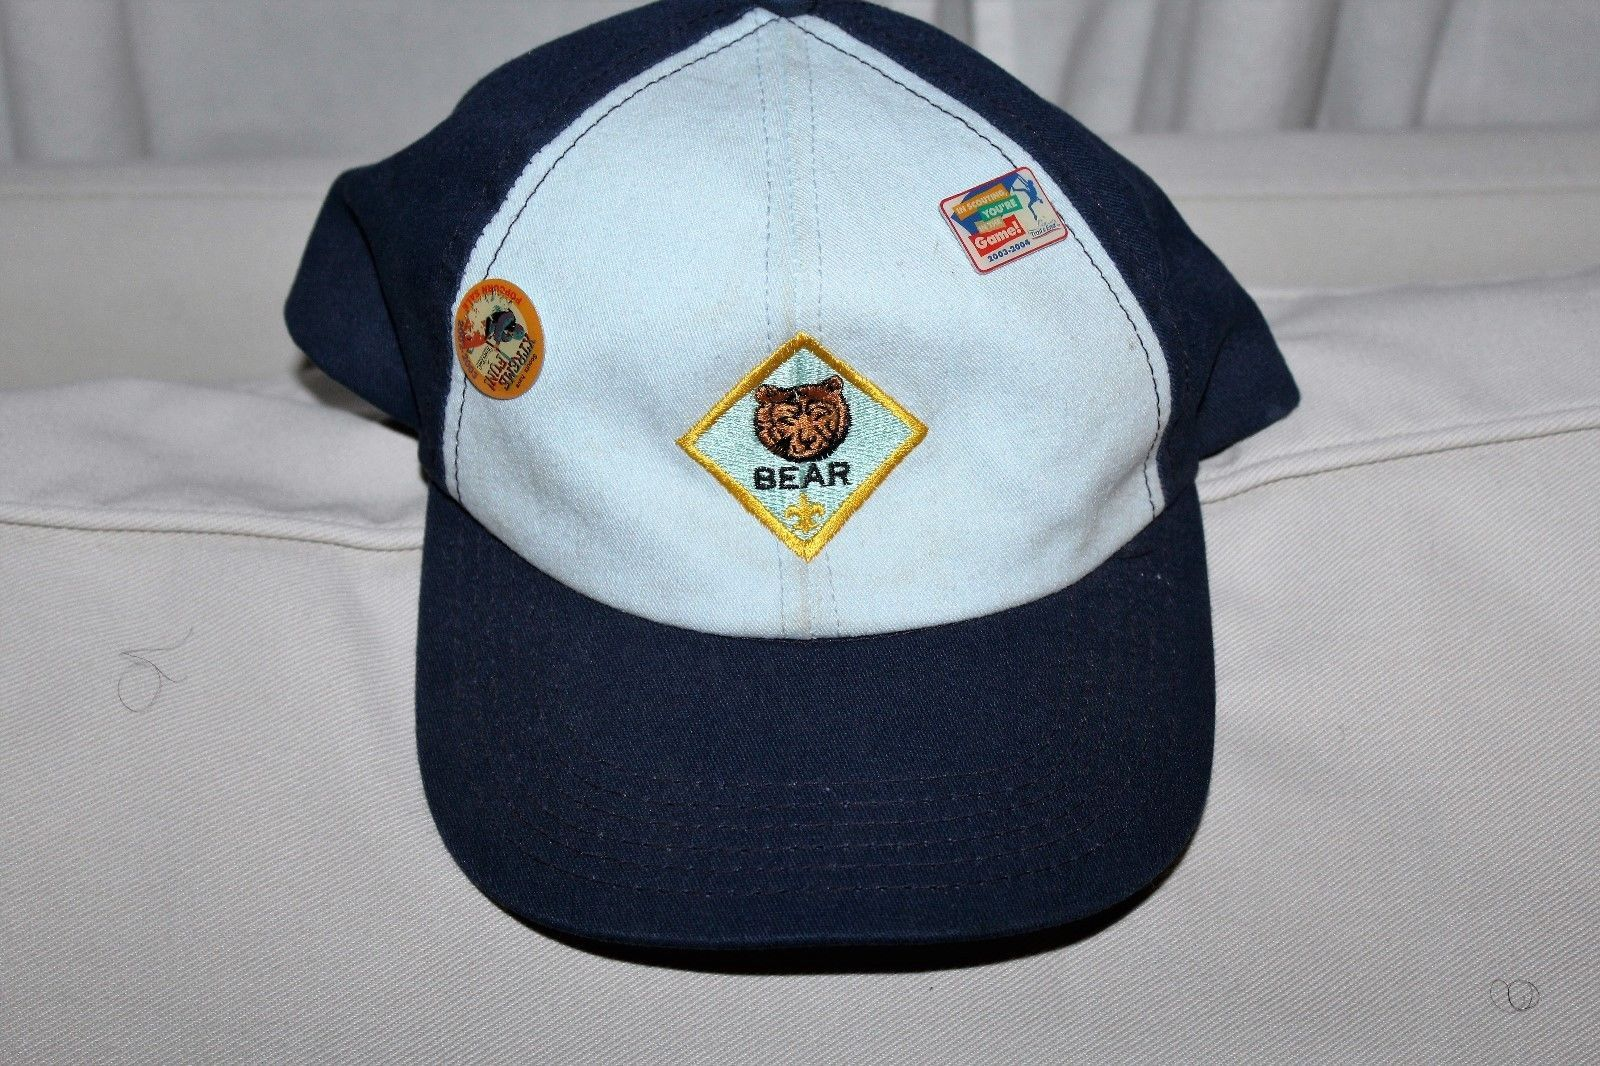 36889415a47 Boy Scout BSA Cub Scout Bear Ball Cap Hat and 36 similar items